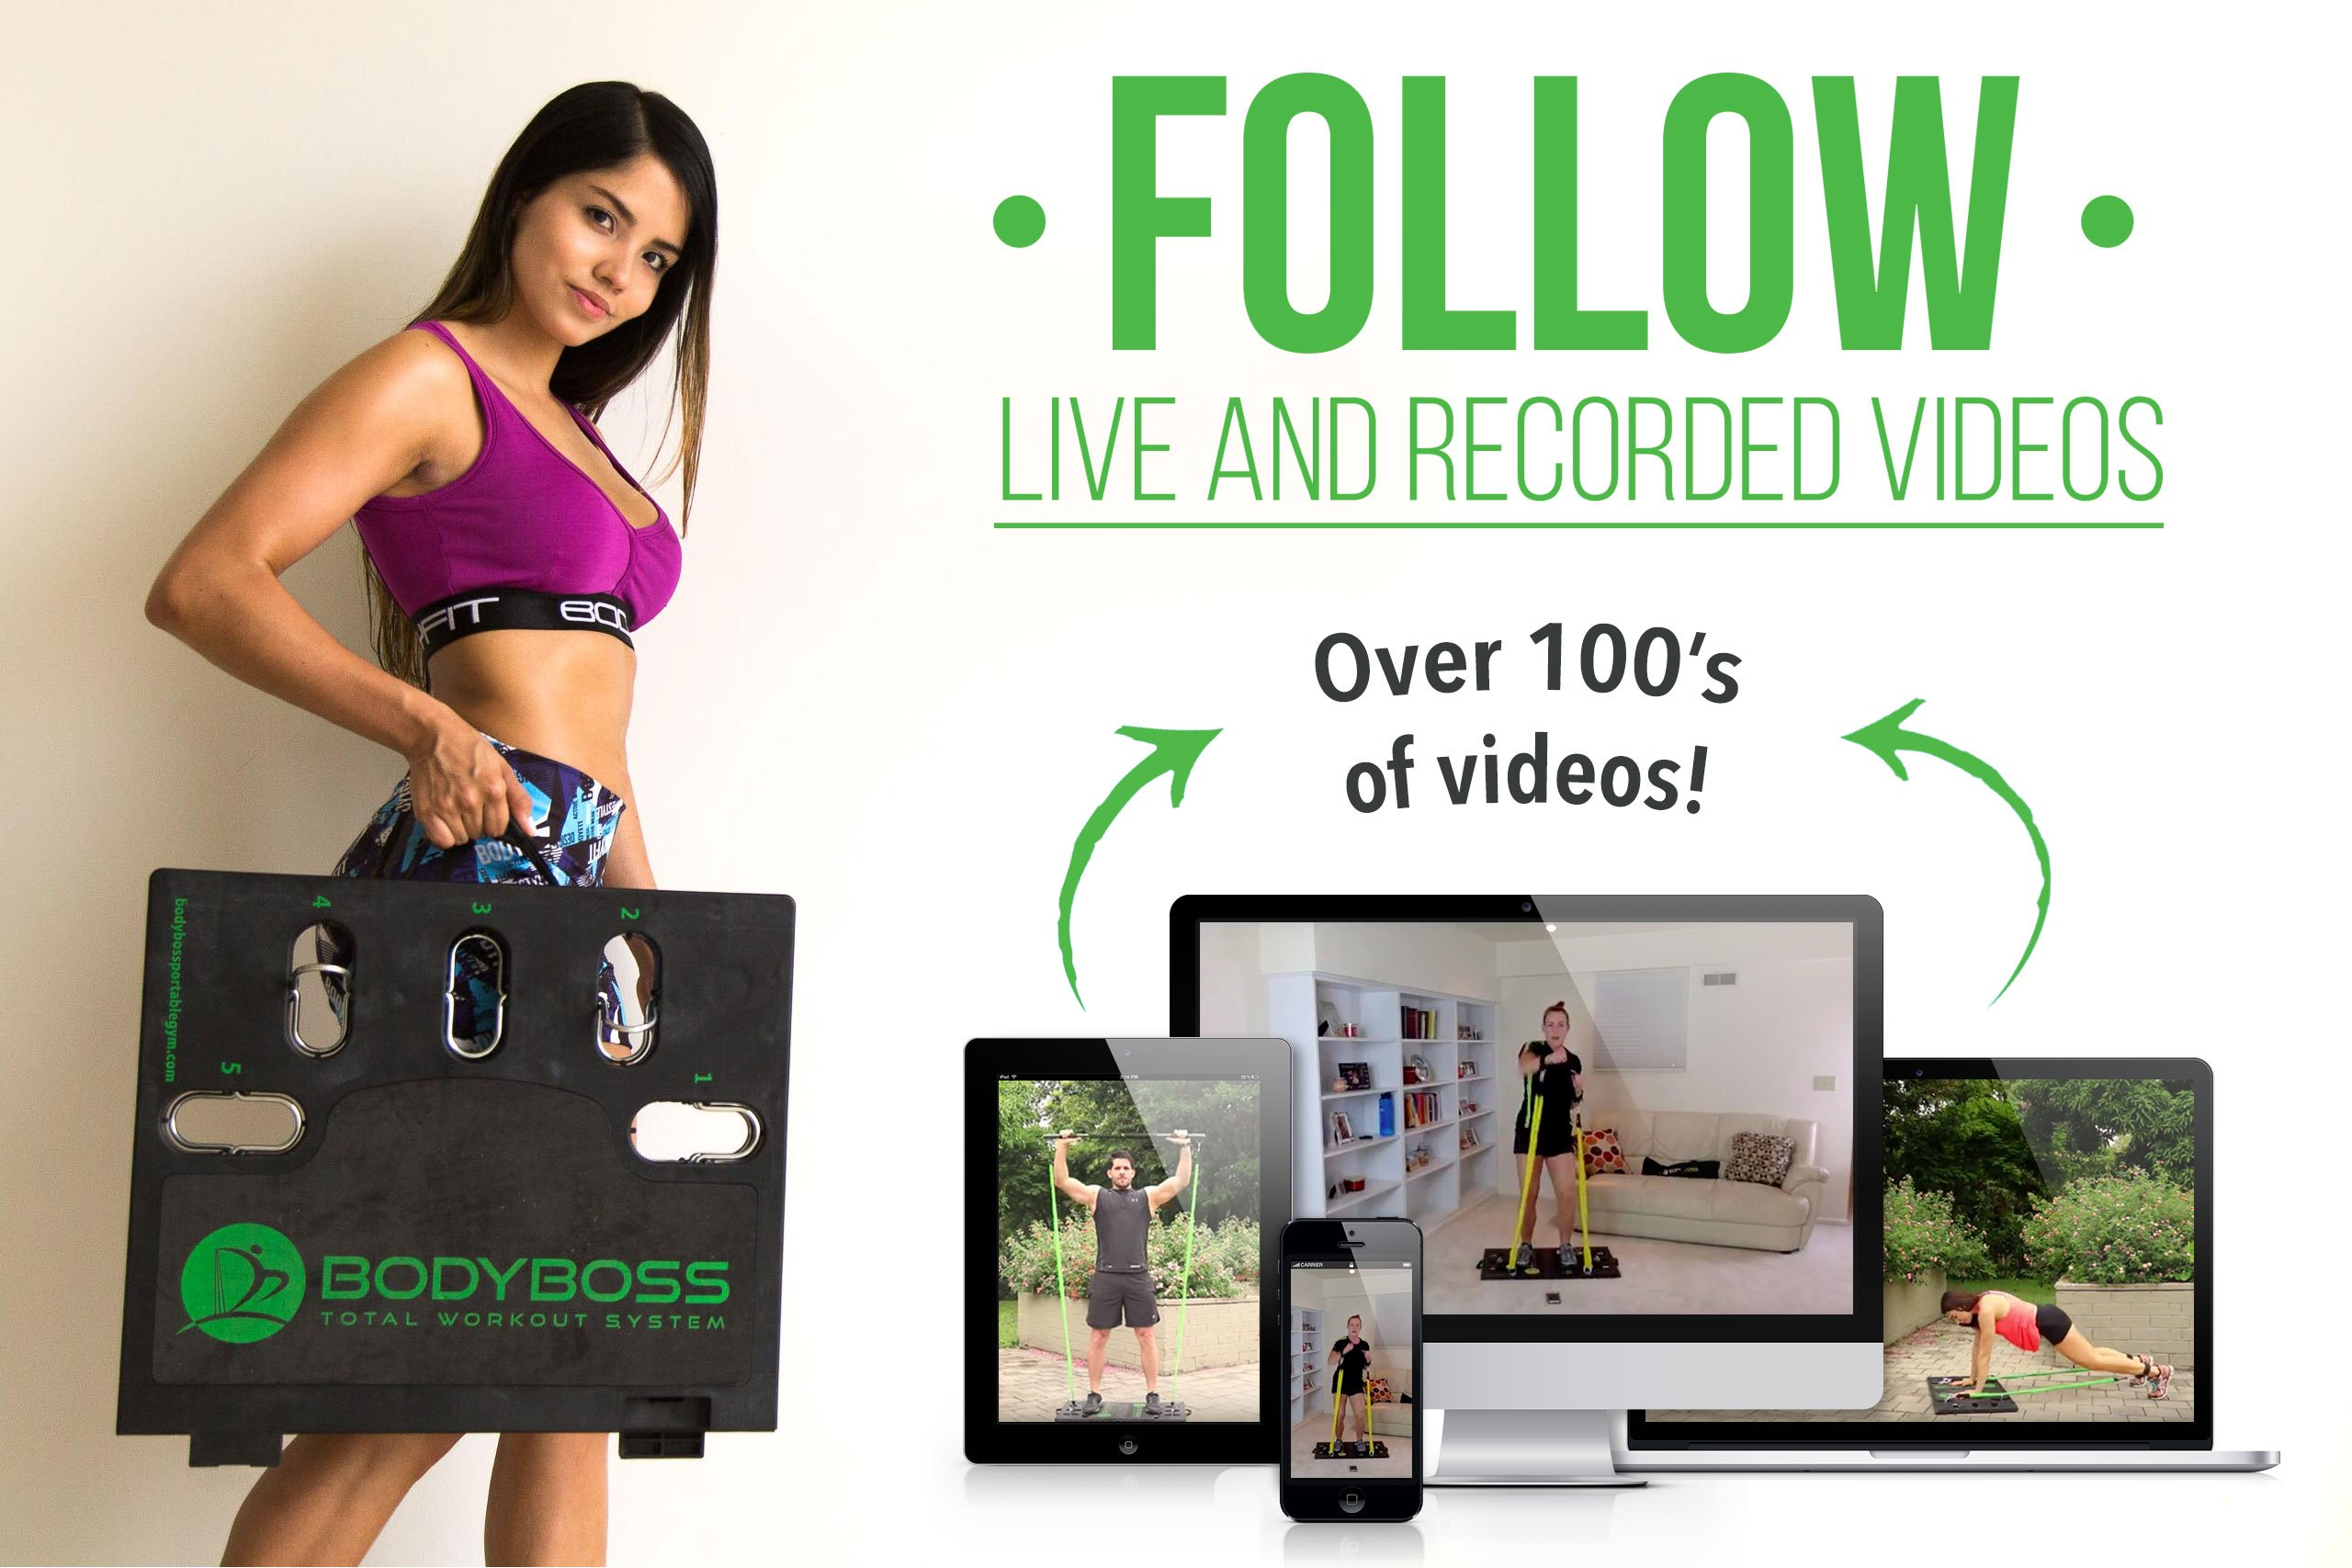 BodyBoss Home Gym 2.0 - Portable Gym Home Workout Package + Extra Set of Resistance Bands (4) - for Full Body Strength Training Workouts at Home or Anywhere You Take it (Green) by BodyBoss (Image #5)